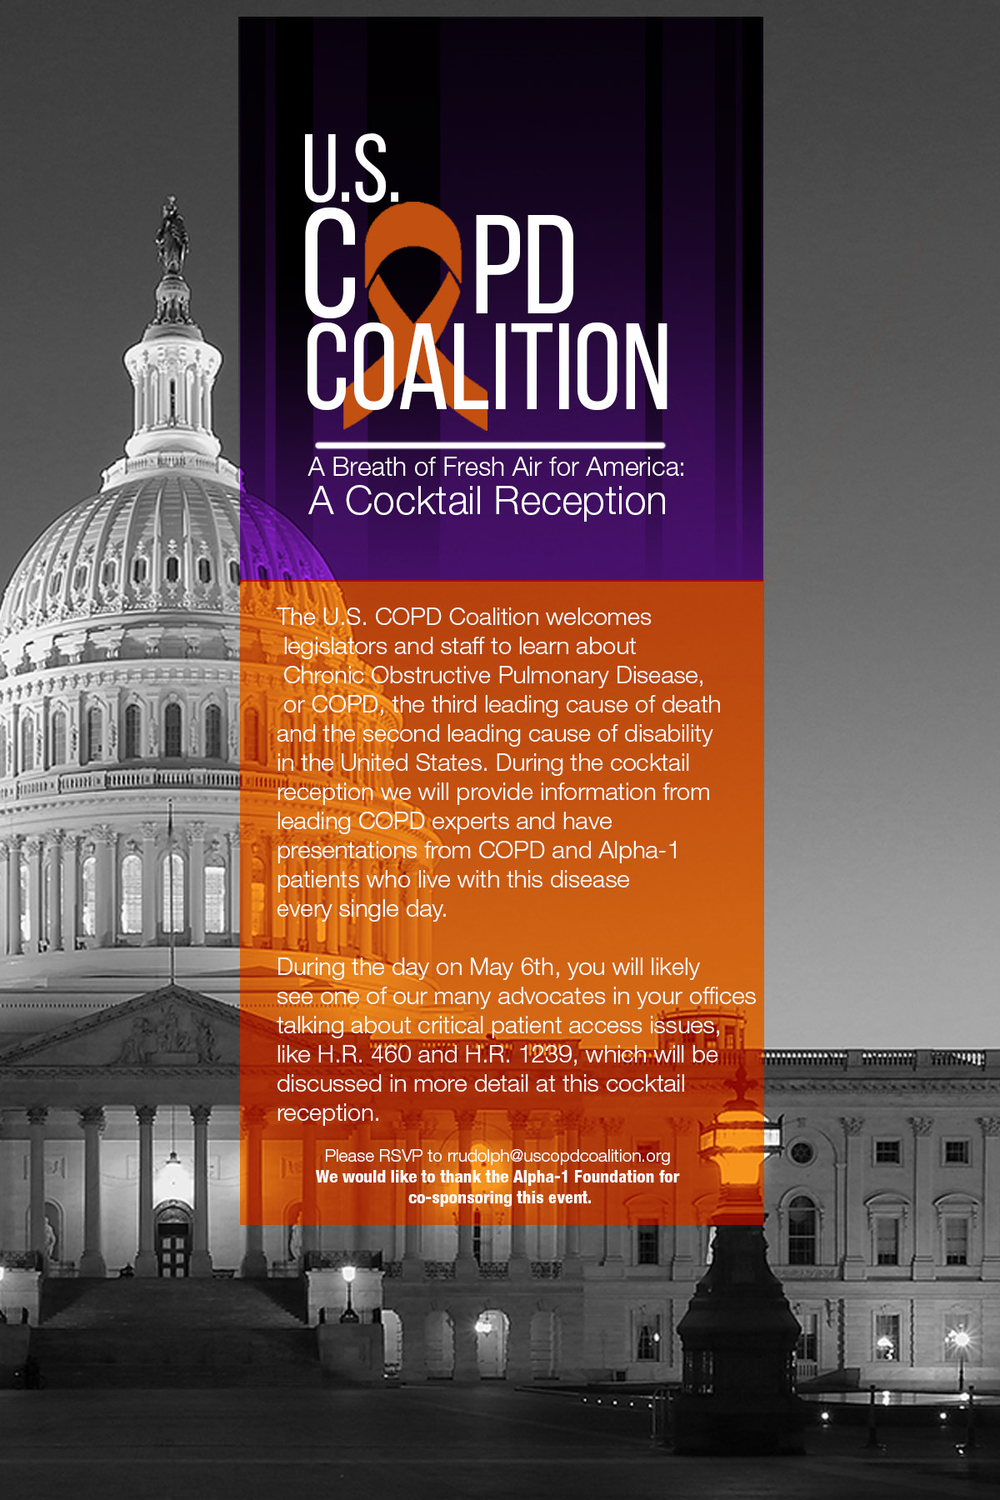 COPD Coalition flyer 4.24.14_Page_1.png